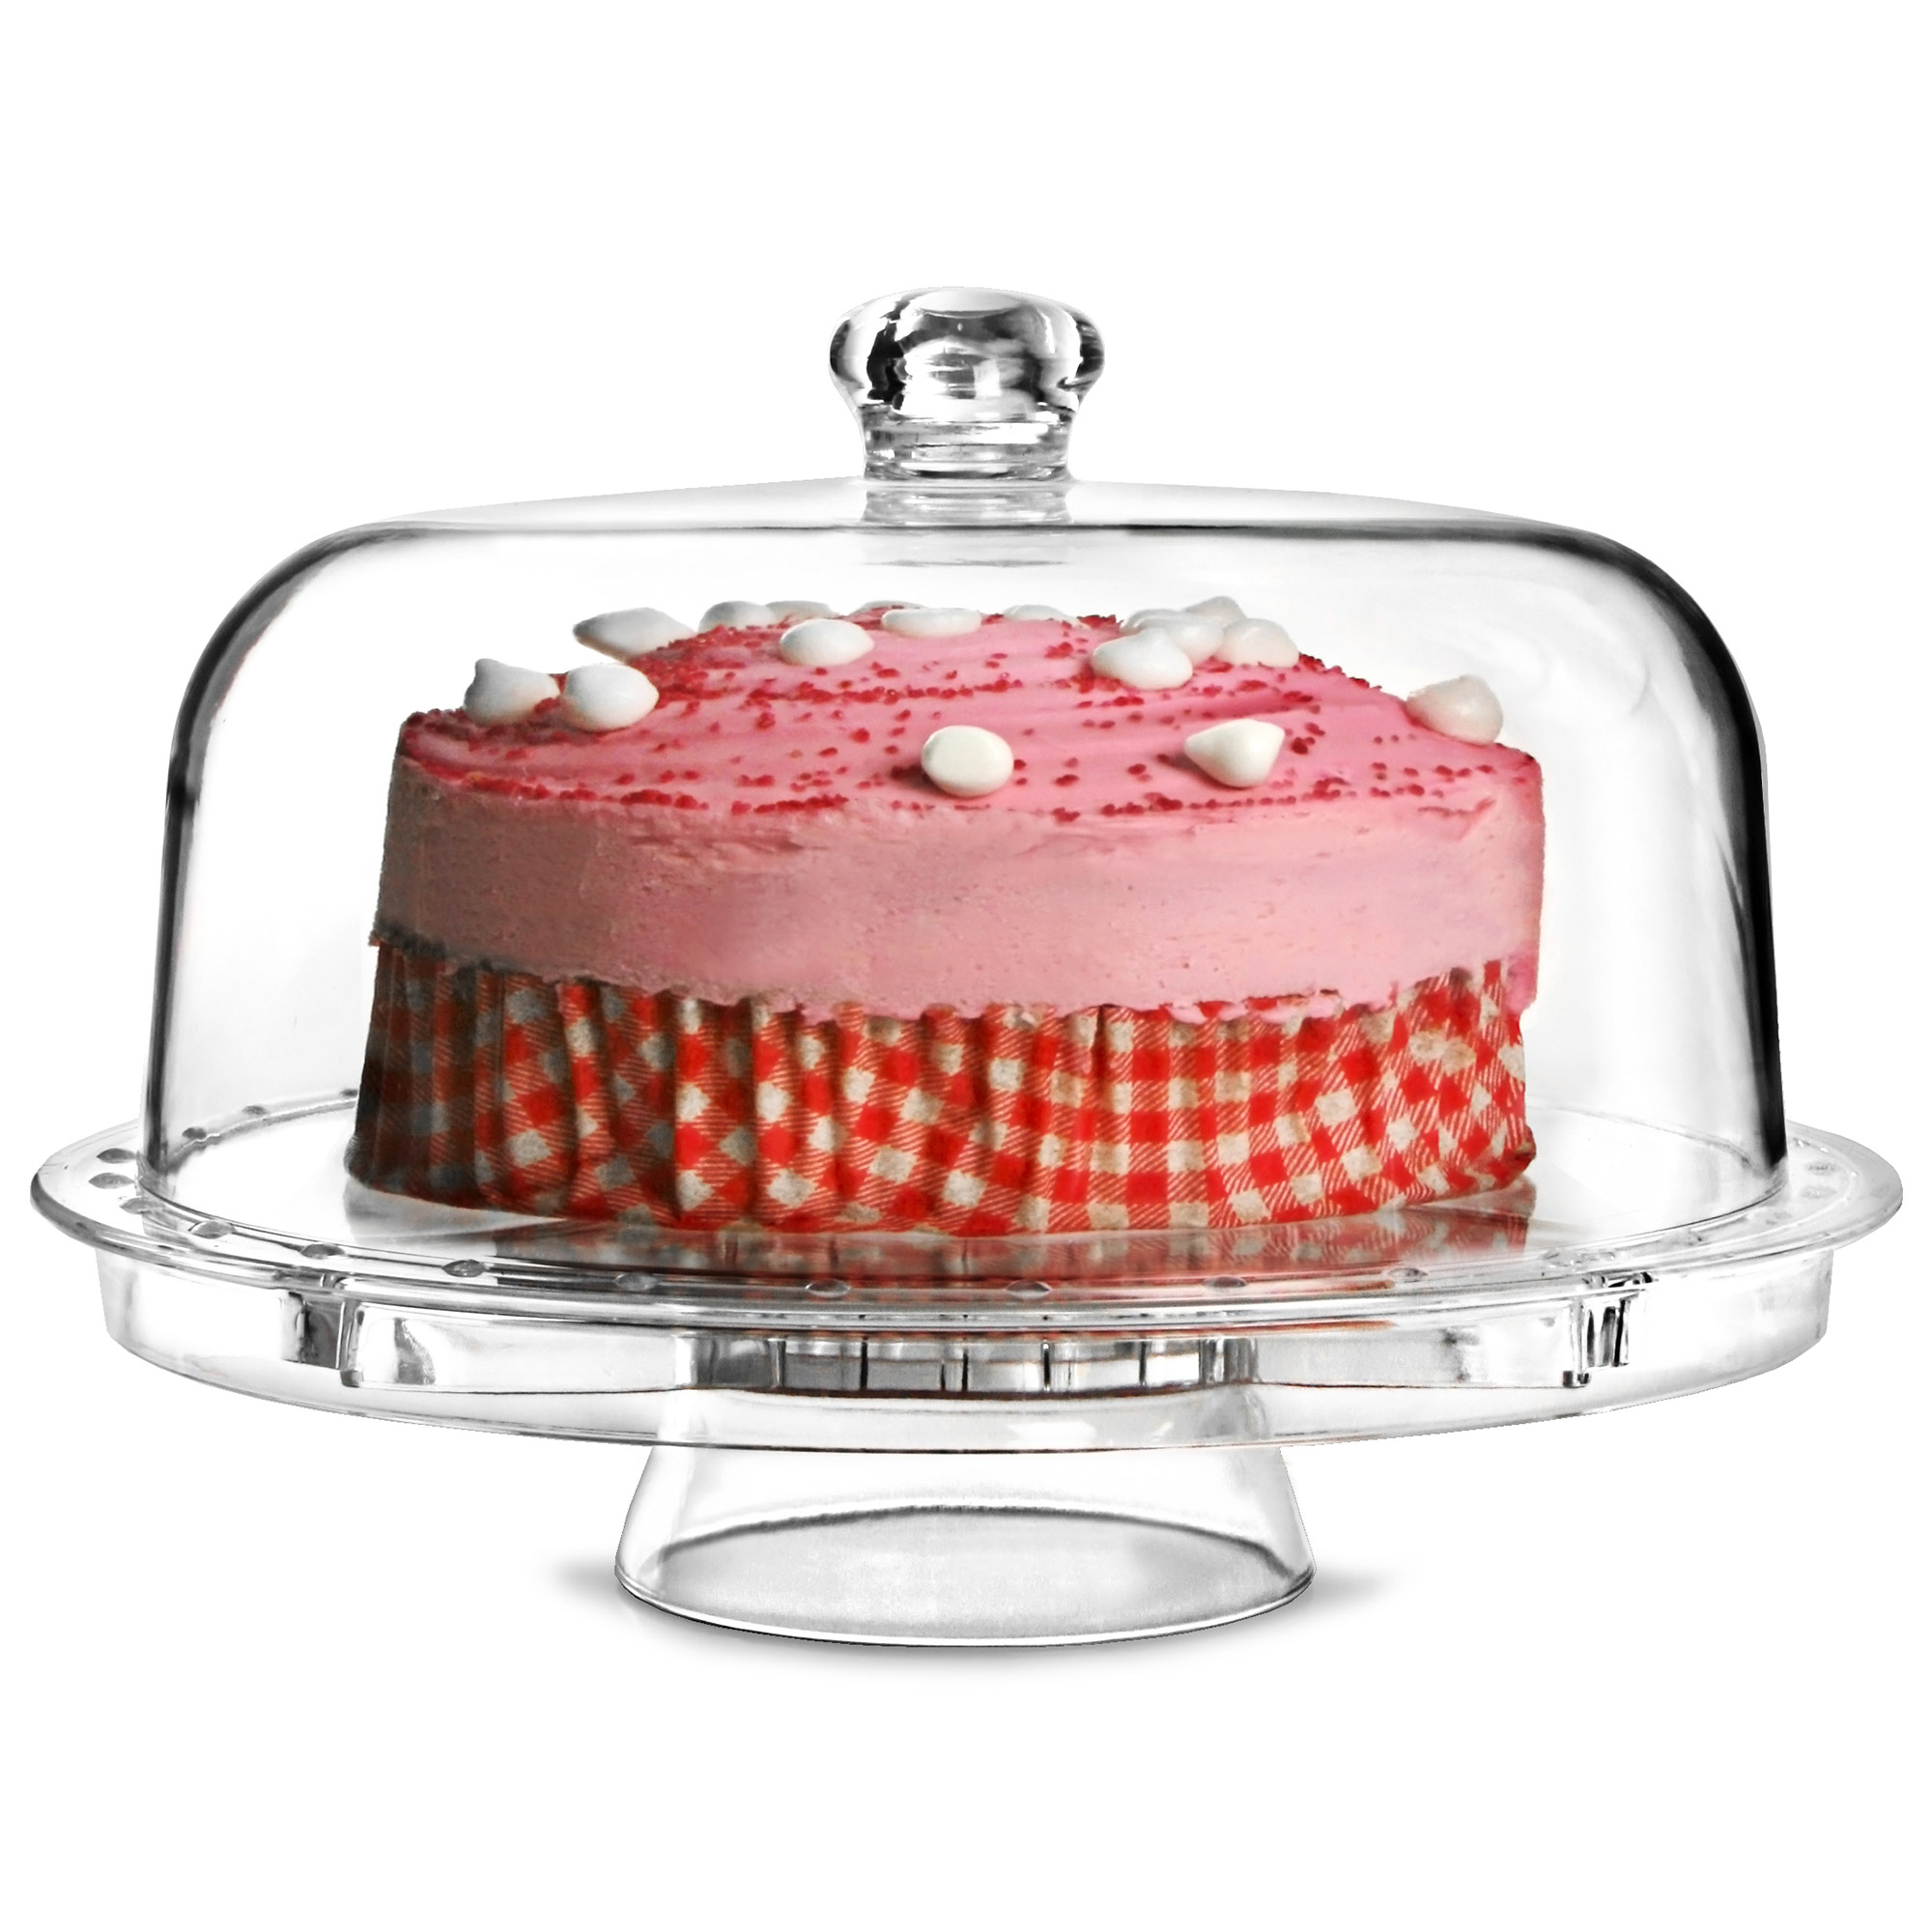 Multifunctional 5 in 1 Cake Stand and Dome. Click ...  sc 1 st  Drinkstuff & Multifunctional 5 in 1 Cake Stand and Dome   Cake Stand Salad Bowl ...